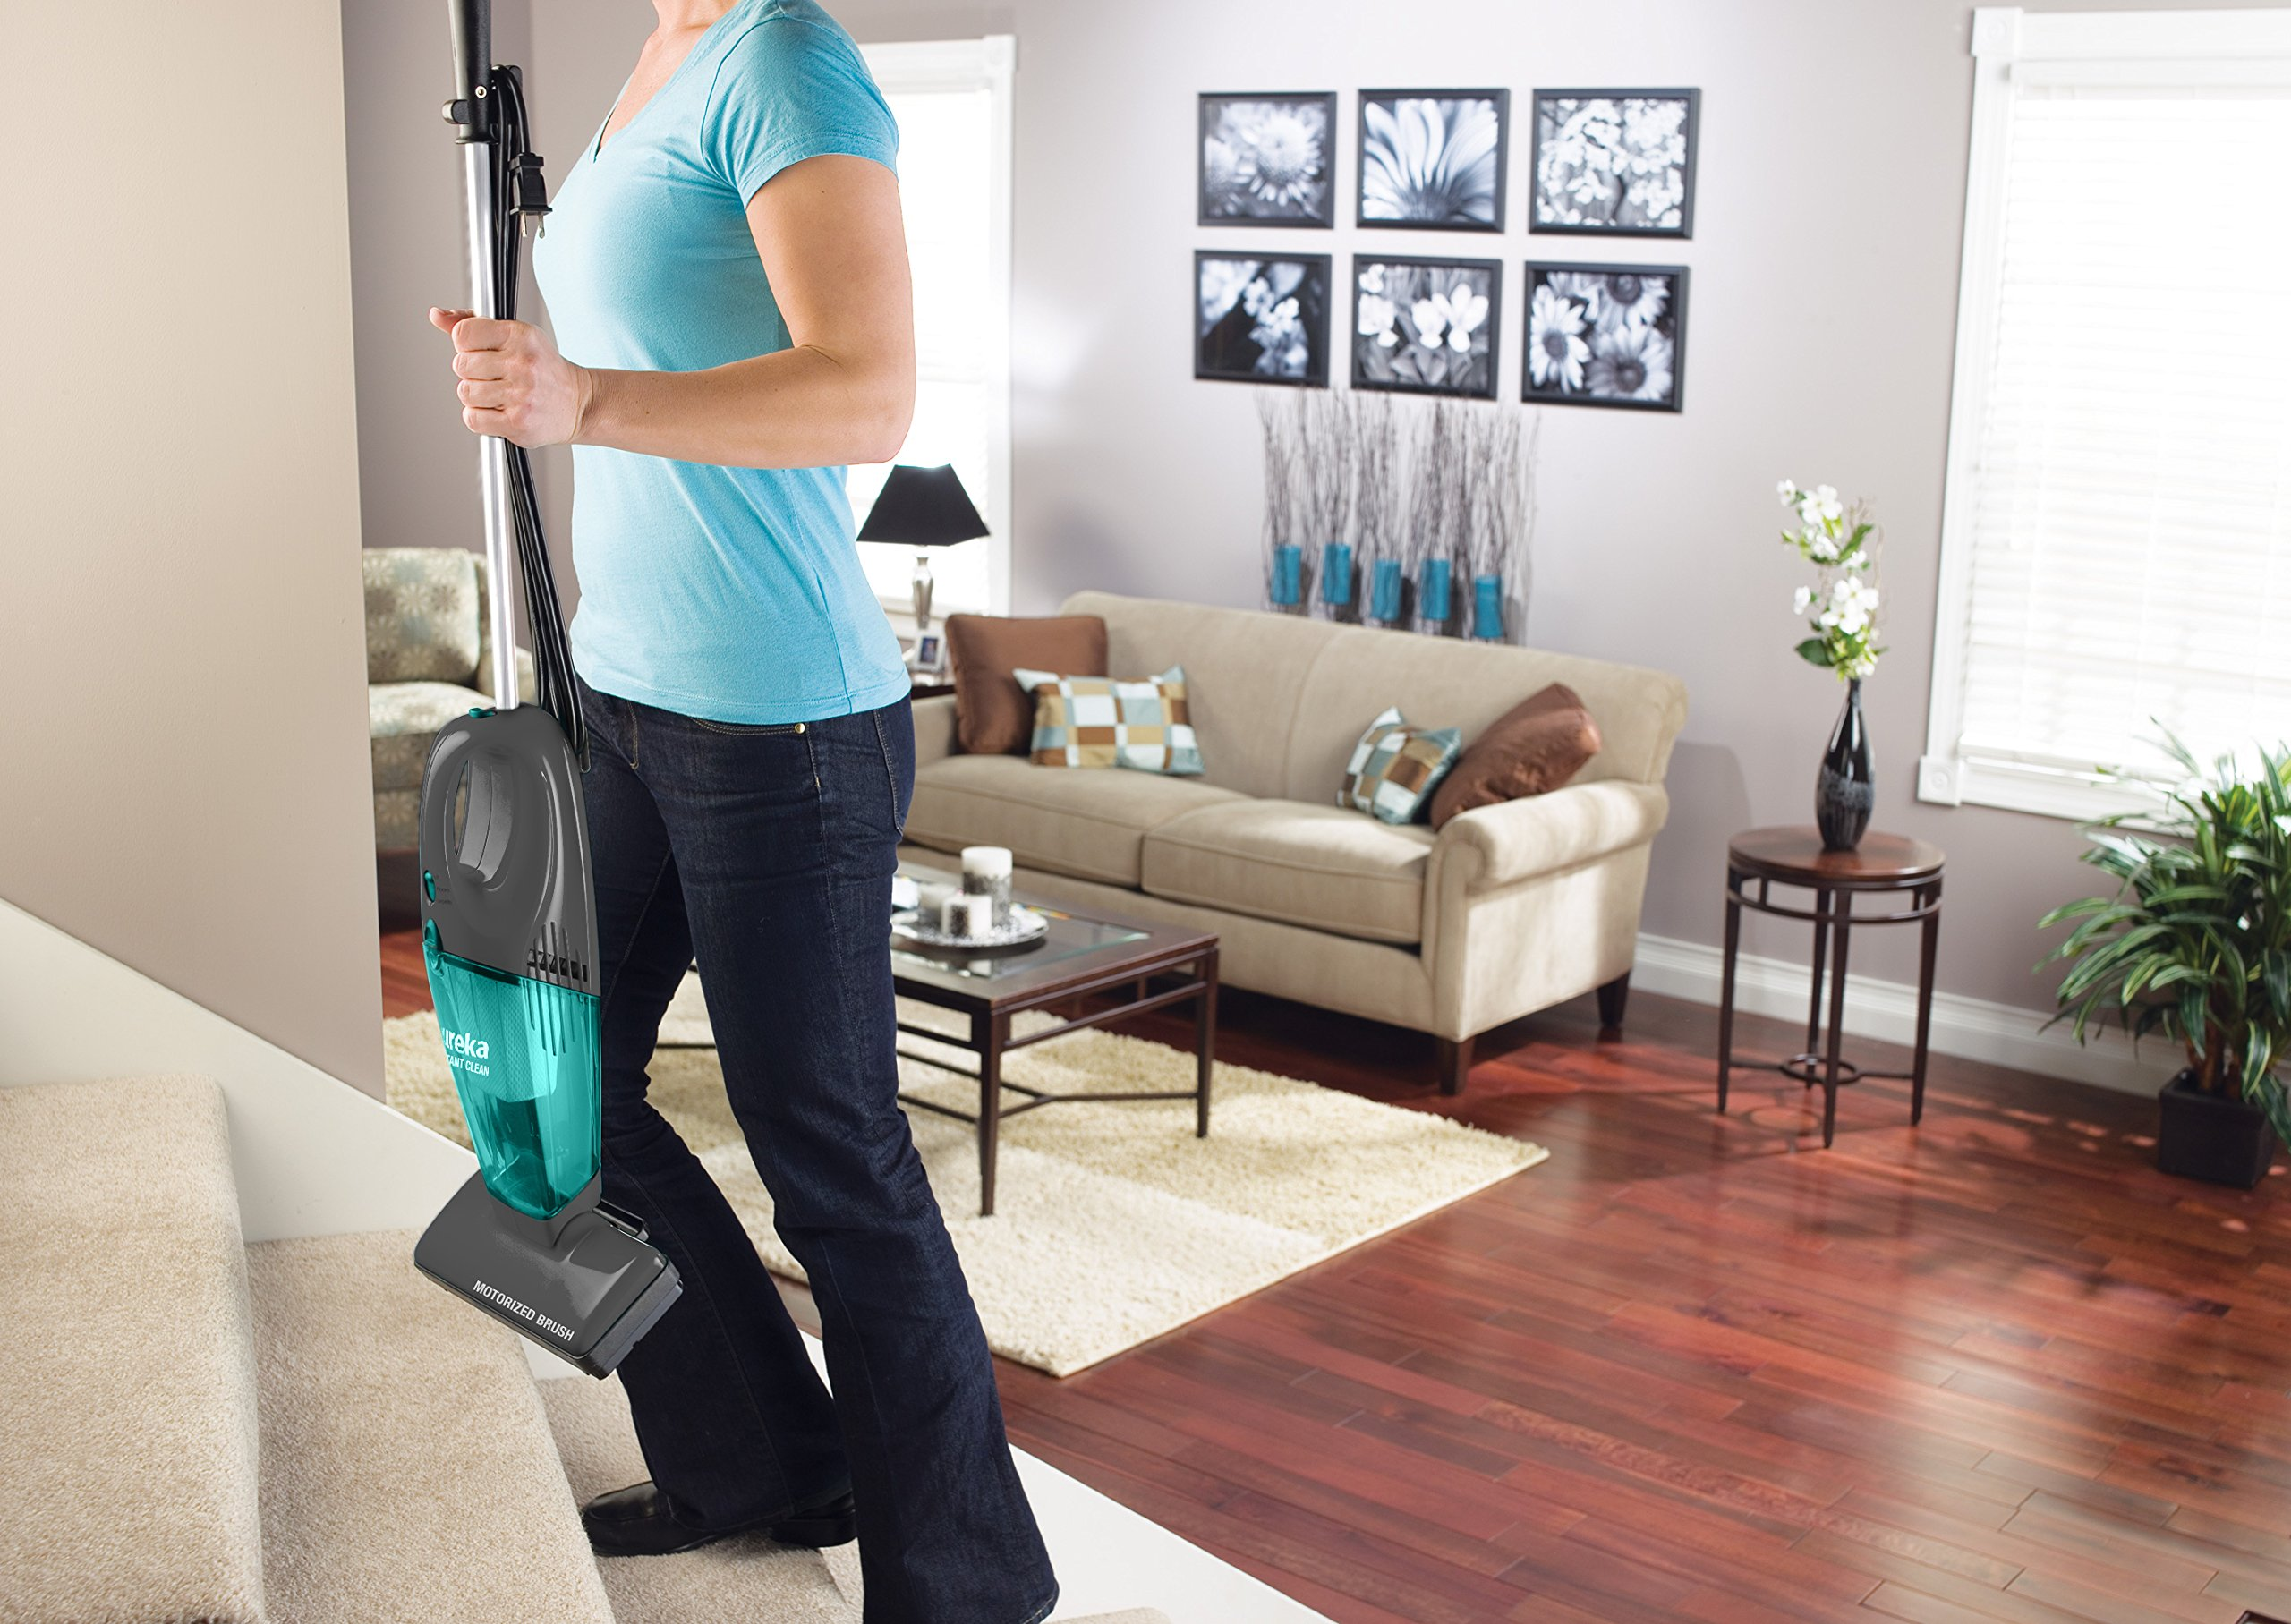 Eureka 2-in-1 Stick & Hand Vacuum, Lightweight Rechargeable Cordless Vacuum Cleaner,Instant Clean 95A by Eureka (Image #4)